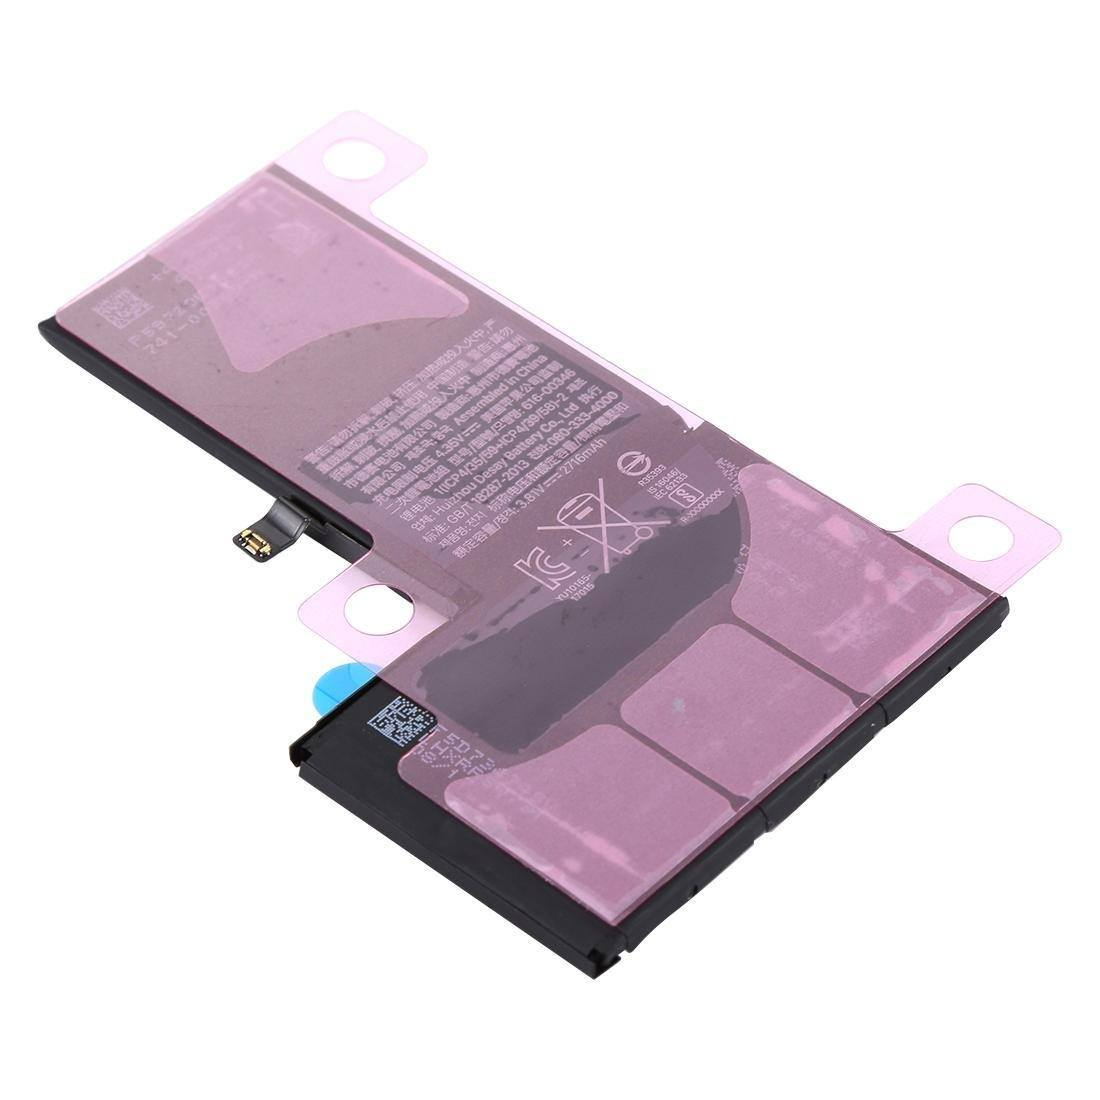 New 2716 mAh Replacement Battery with Adhesive for iPhone X A1865 A1901 A1902 Pic3